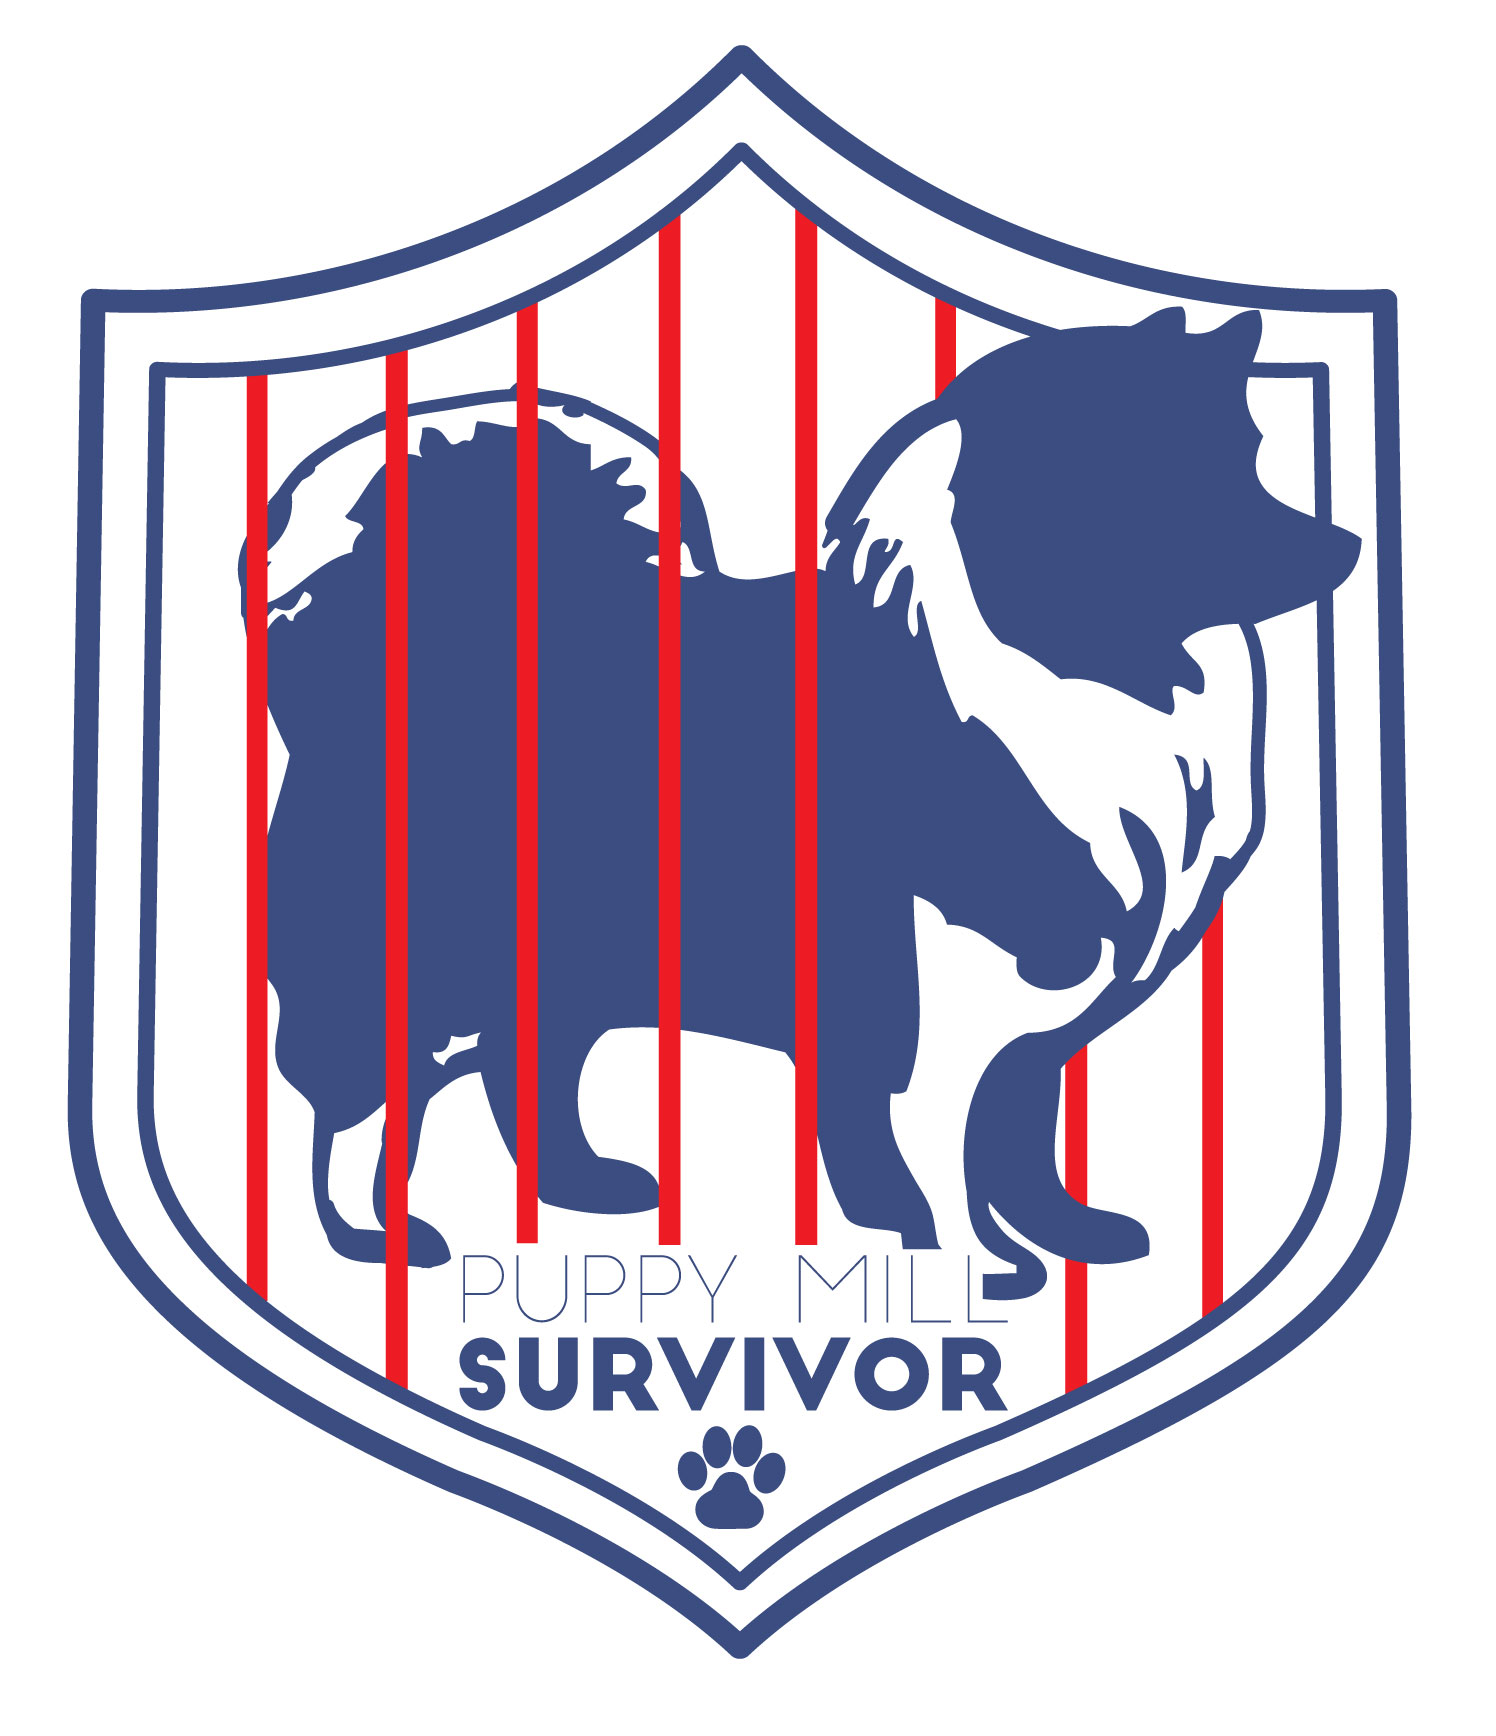 KEESHOND PUPPY MILL SURVIVOR BADGE